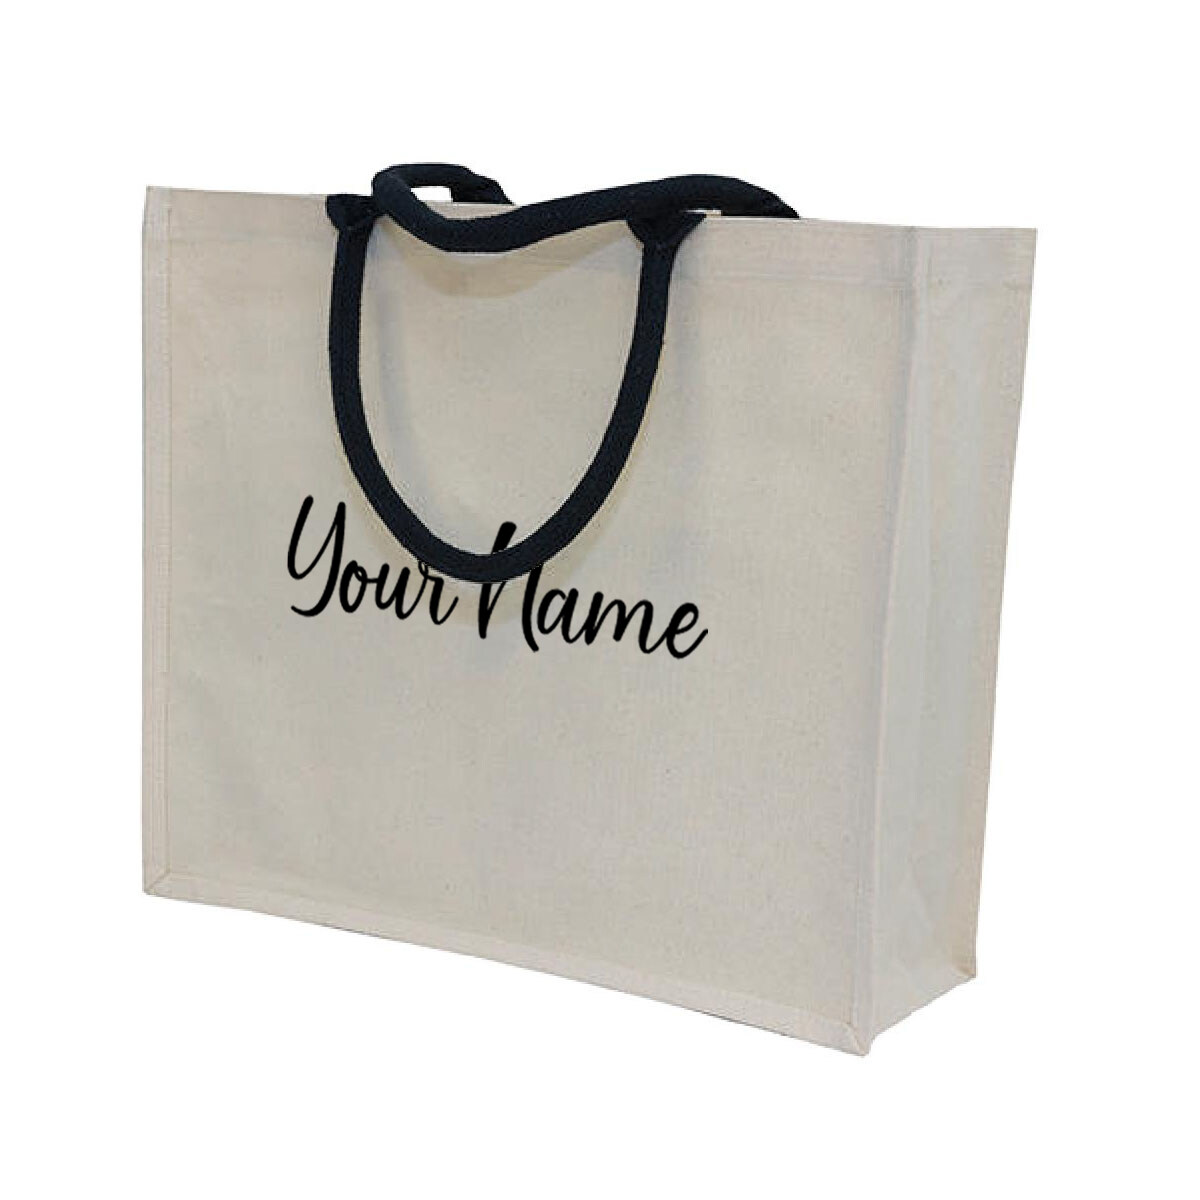 MyUnique Canvas Bag with Name CB06 (Black)